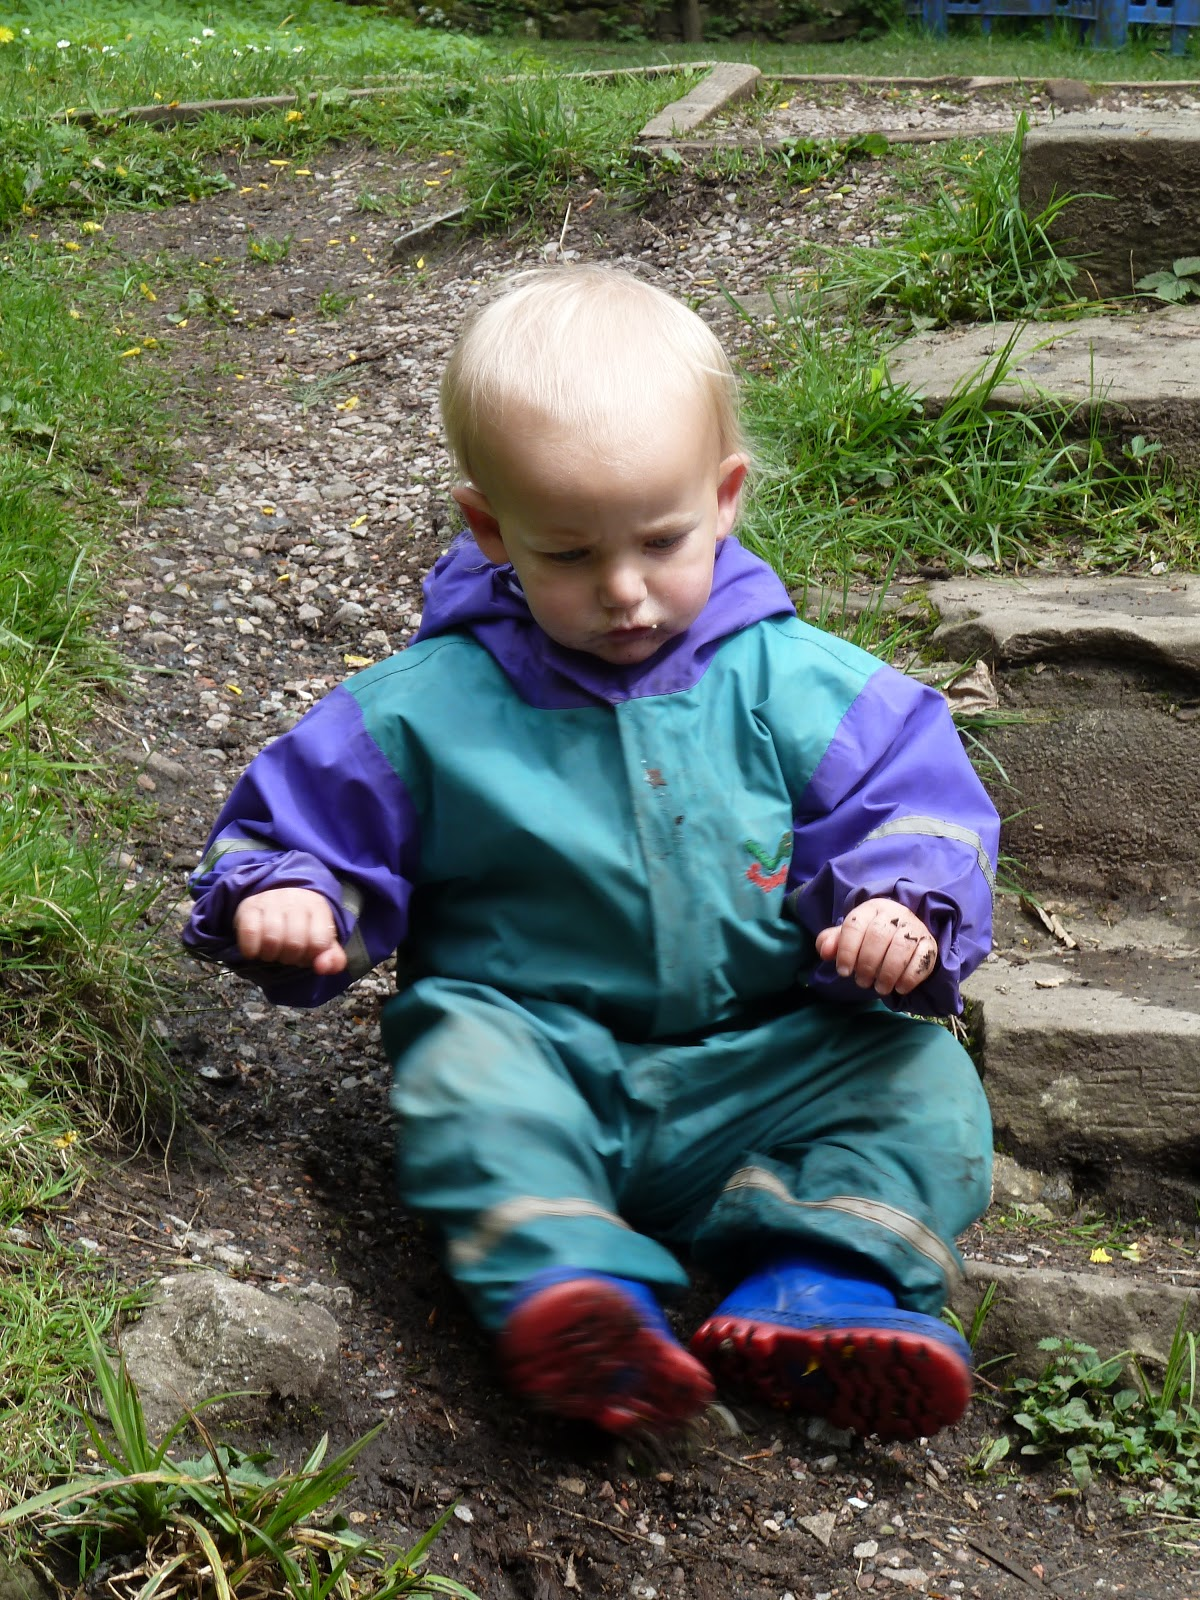 Forest Tots: Women in wellies!!! (and a few Dads too)